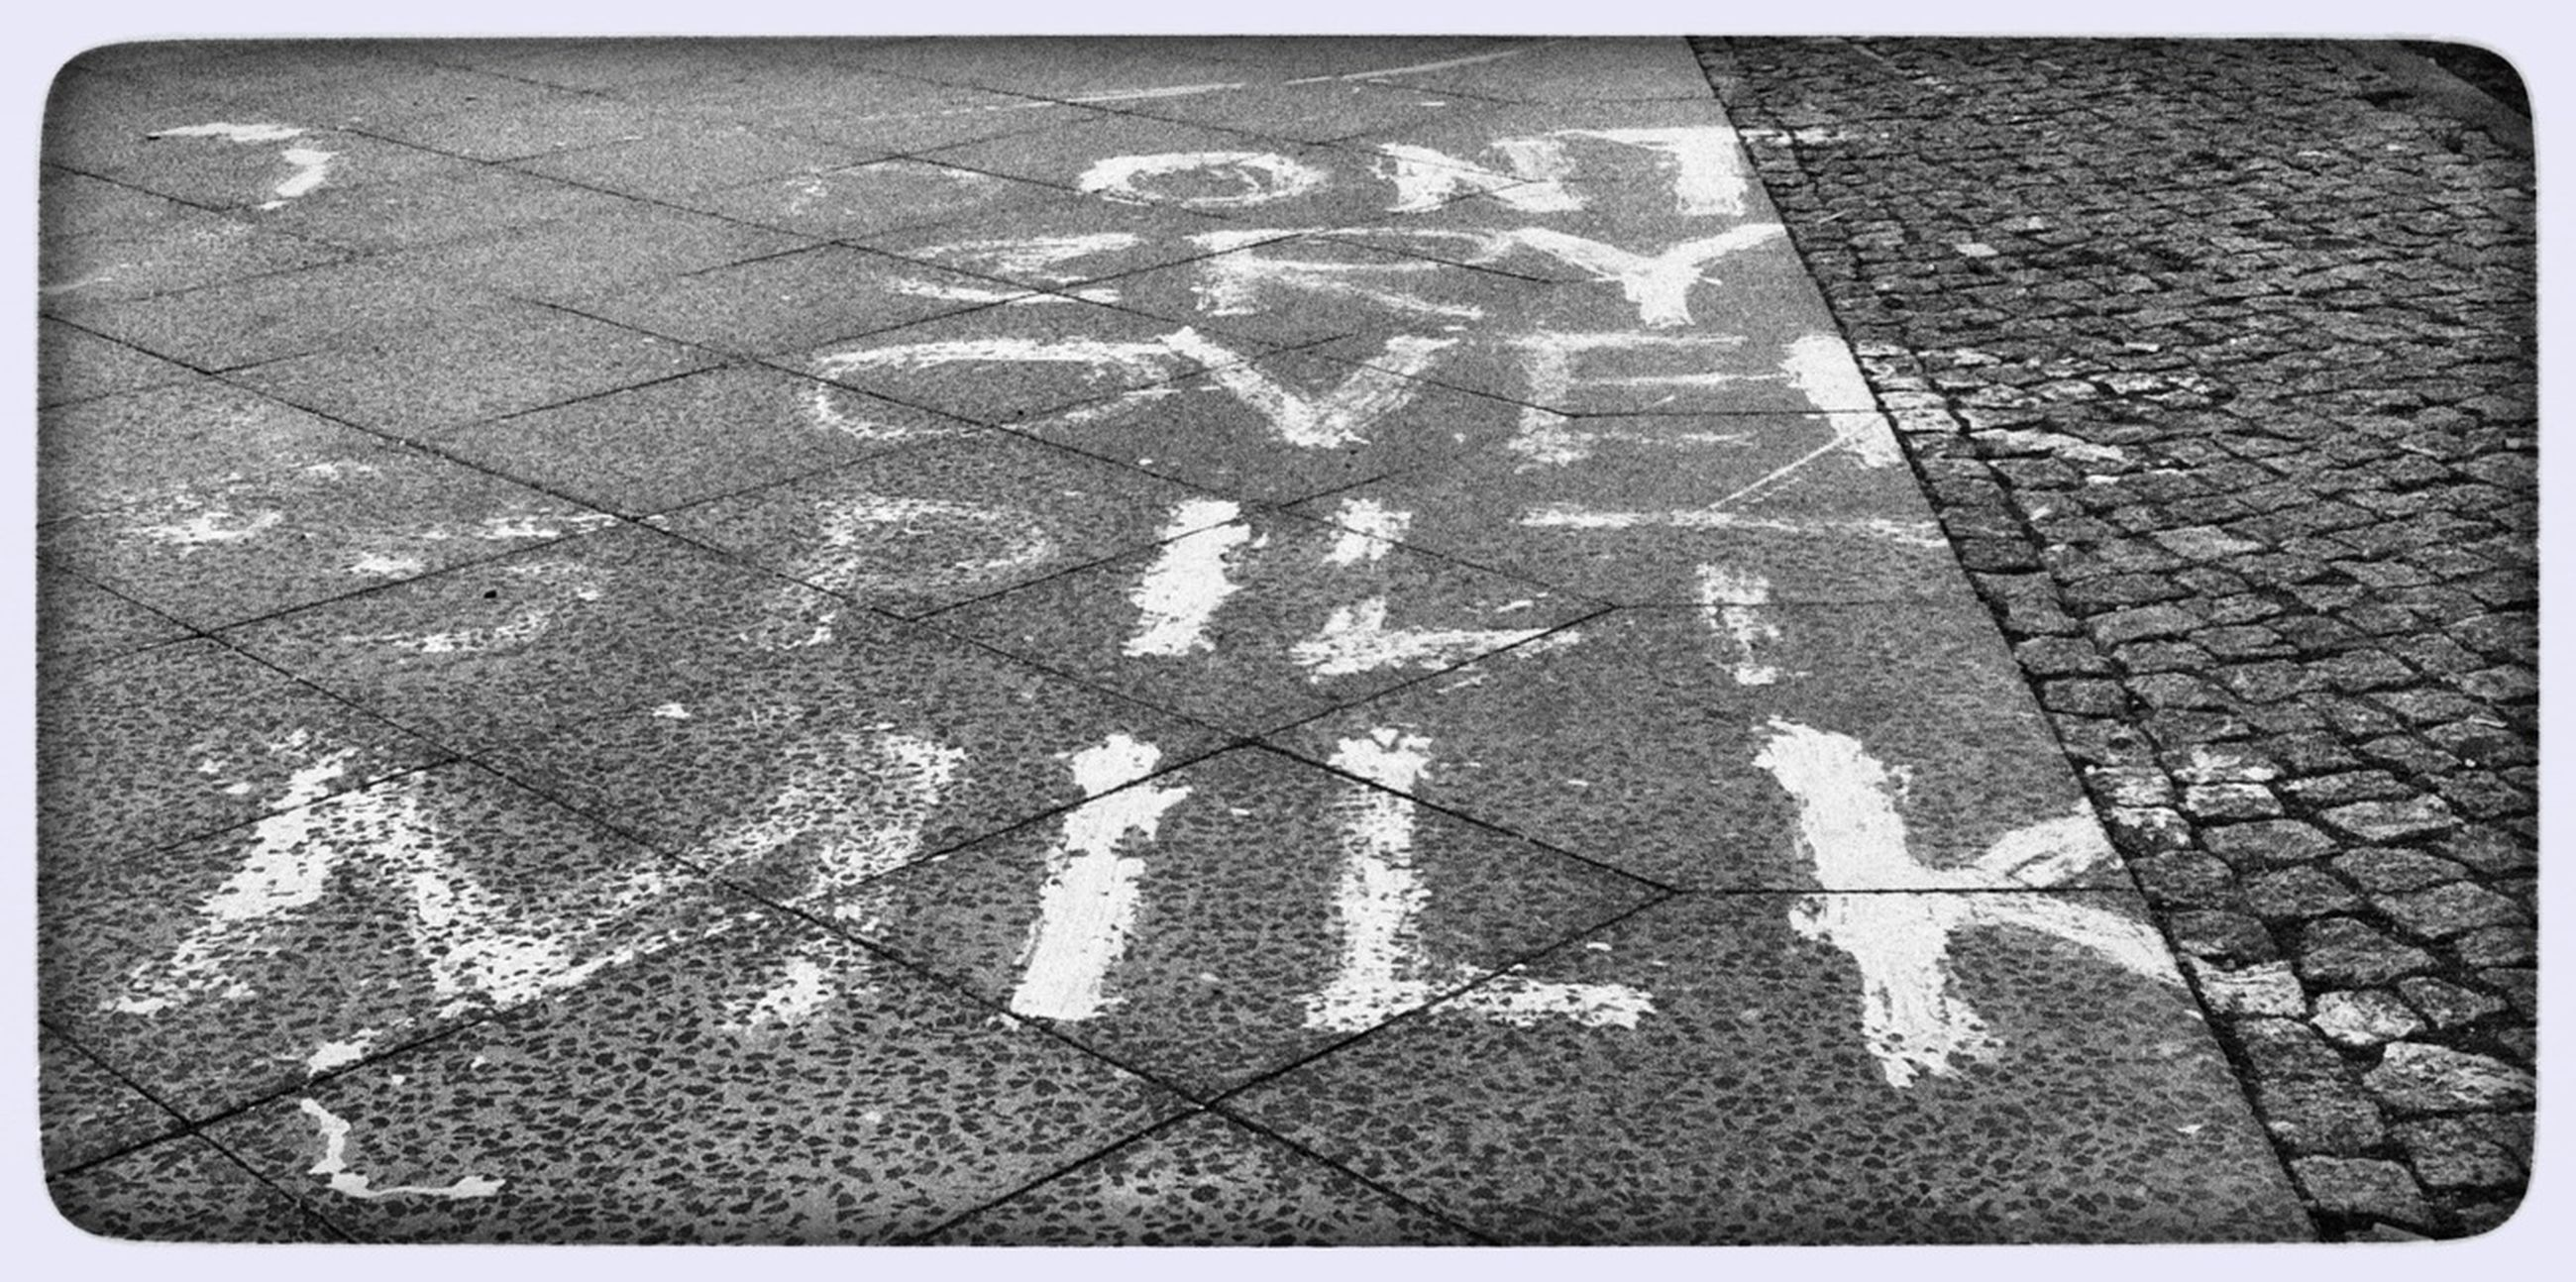 transfer print, auto post production filter, high angle view, street, text, road marking, communication, western script, shadow, guidance, cobblestone, road, day, outdoors, sunlight, asphalt, arrow symbol, directional sign, paving stone, sidewalk